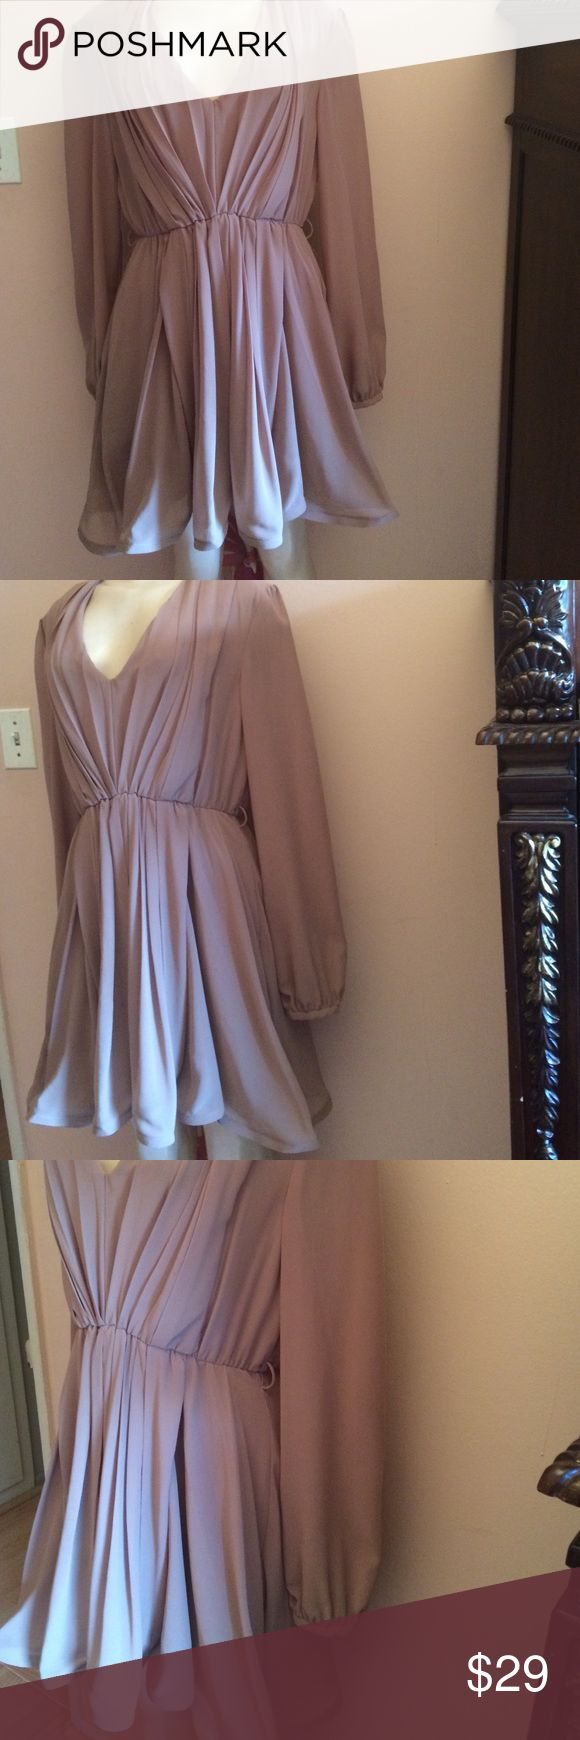 Mocha color pretty dress This is a flirty dress that will catch attention. Very delicate and flowy. Shoes are listed separately and they're a great match with this dress. Belt is missing. Dresses Mini